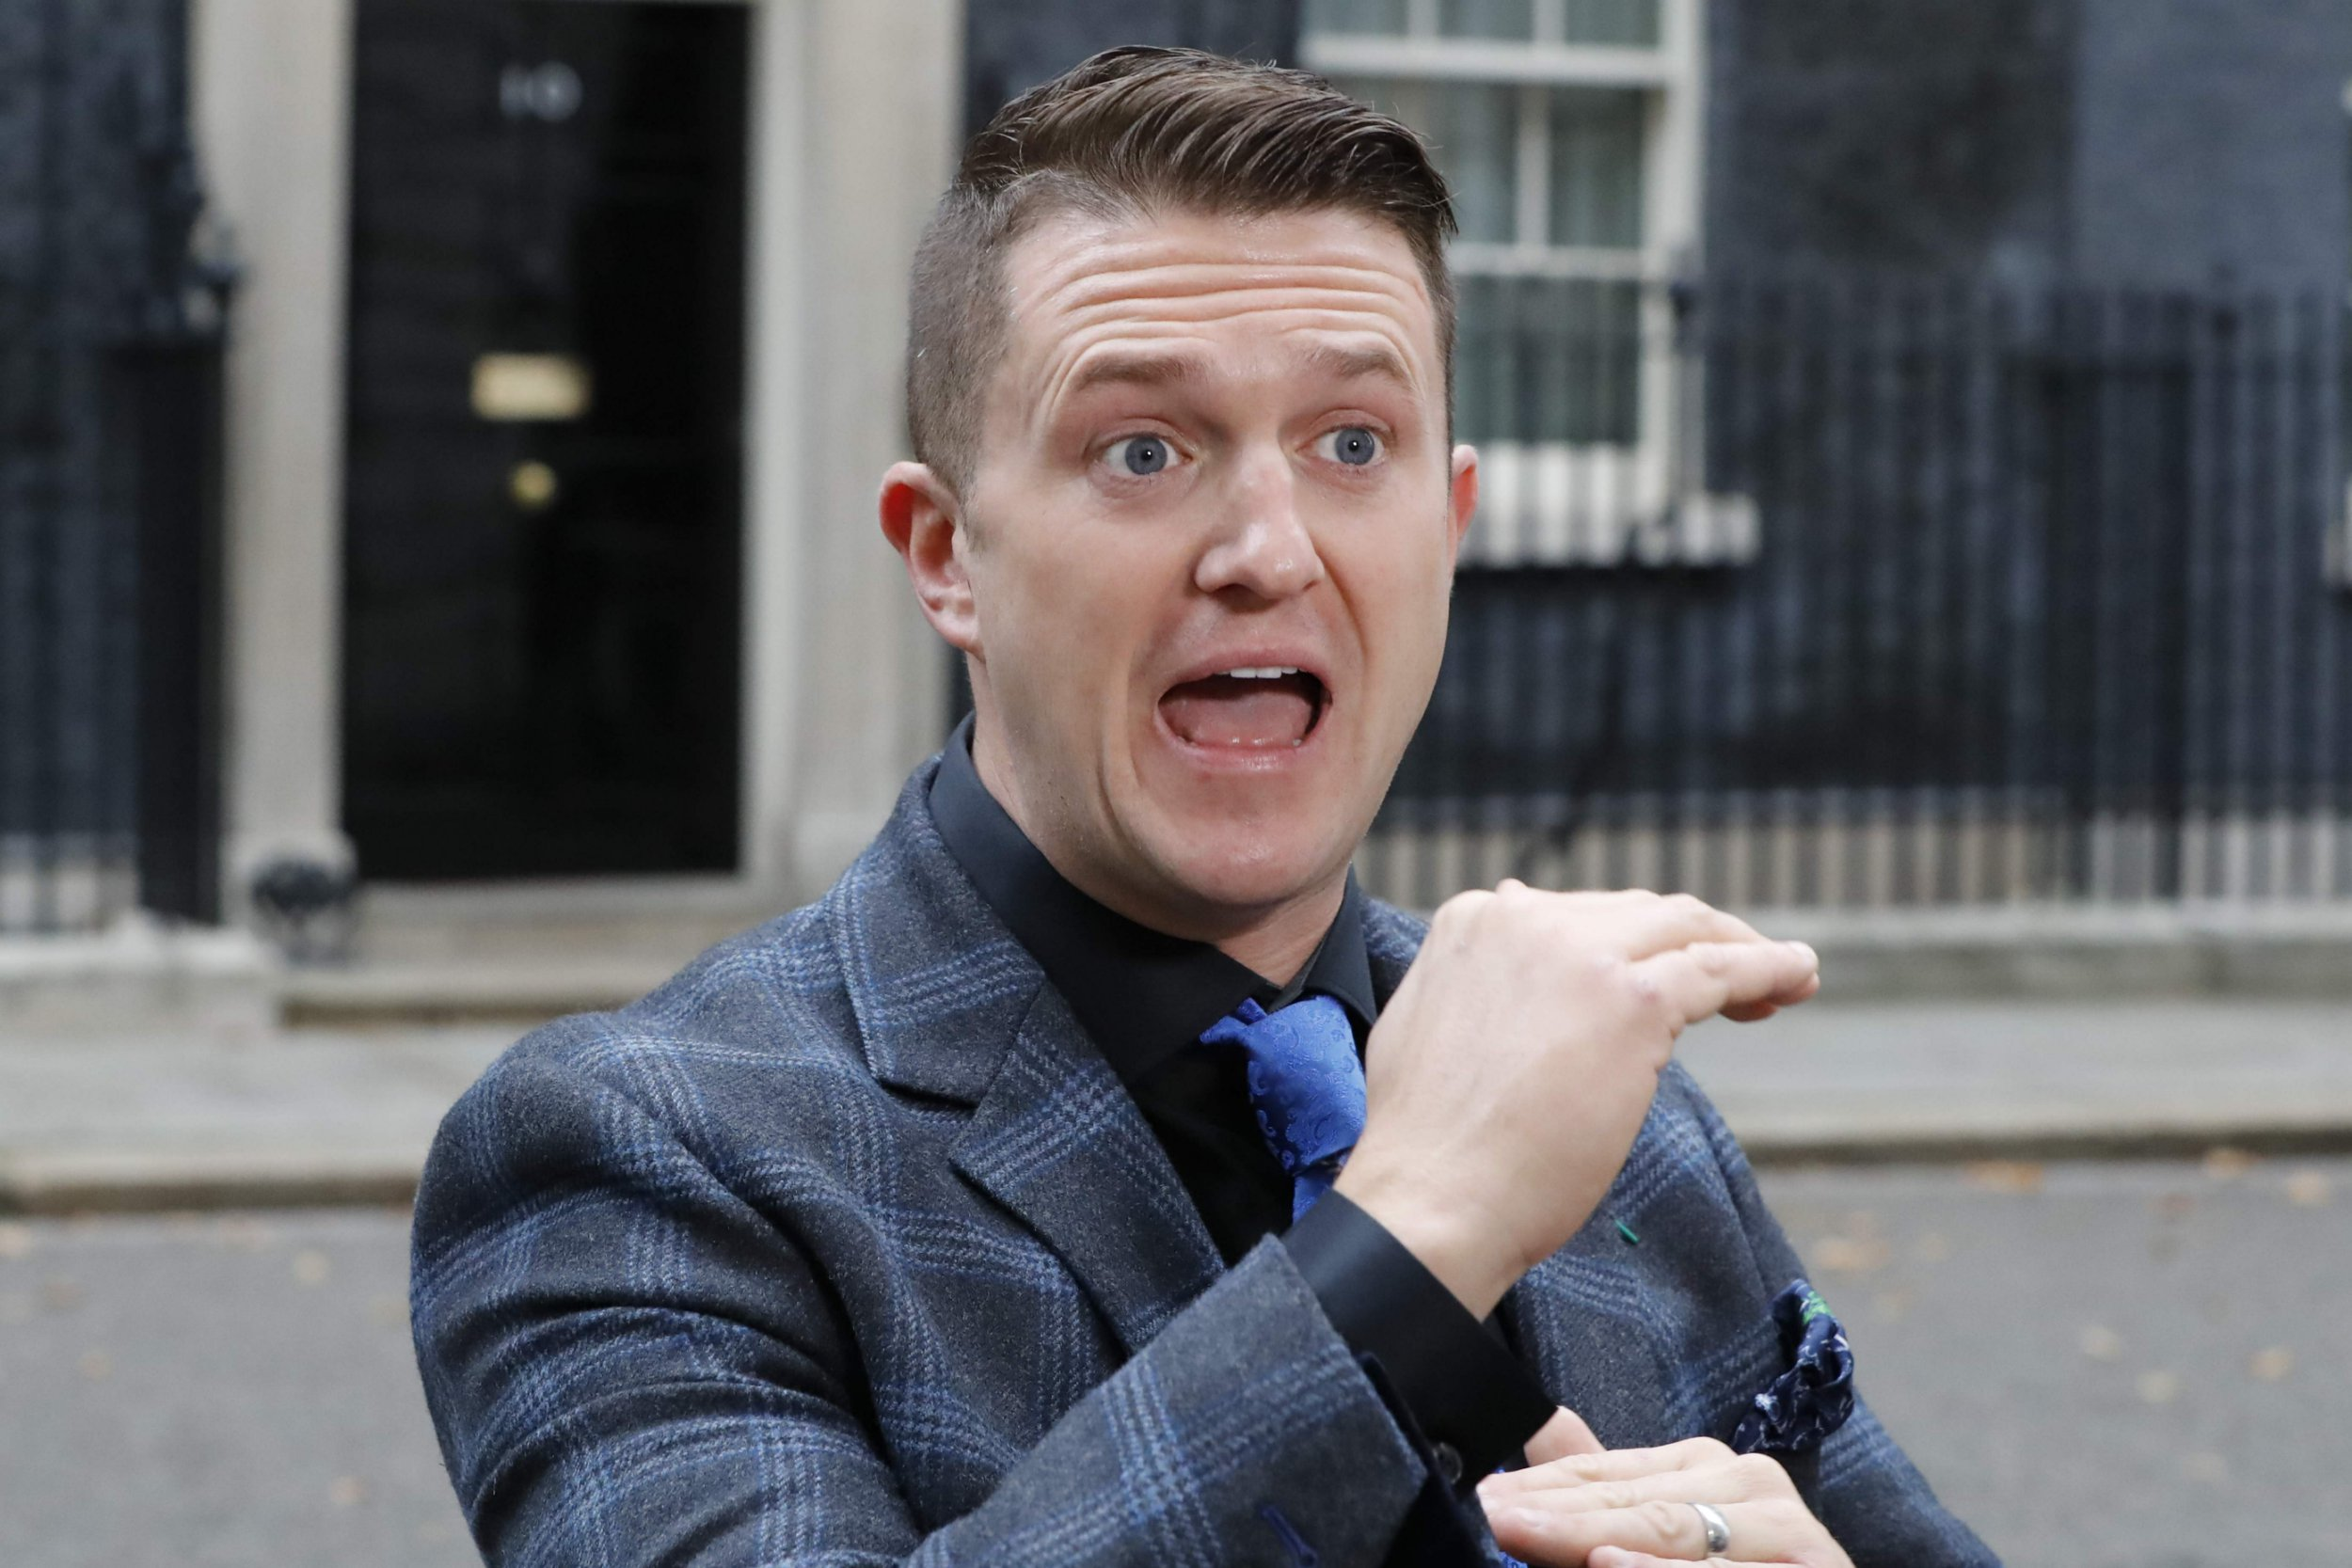 "Founder and former leader of the anti-Islam English Defence League, Stephen Yaxley-Lennon, AKA Tommy Robinson, talks to the media after delivering a petition to 10 Downing Street in central London on November 6, 2018. - The head of the UK Independence Party has appointed leading far-right activist Stephen Yaxley-Lennon, AKA Tommy Robinson, as a personal adviser, prompting UKIP's former leader Nigel Farage to call for his ouster amid accusations of Islamophobia. UKIP chief Gerard Batten told the BBC on November 23, 2018 that Yaxley-Lennon, a hugely divisive figure who founded the anti-Islam English Defence League, had been appointed as his adviser on ""rape gangs and prison reform"". (Photo by TOLGA AKMEN / AFP)TOLGA AKMEN/AFP/Getty Images"